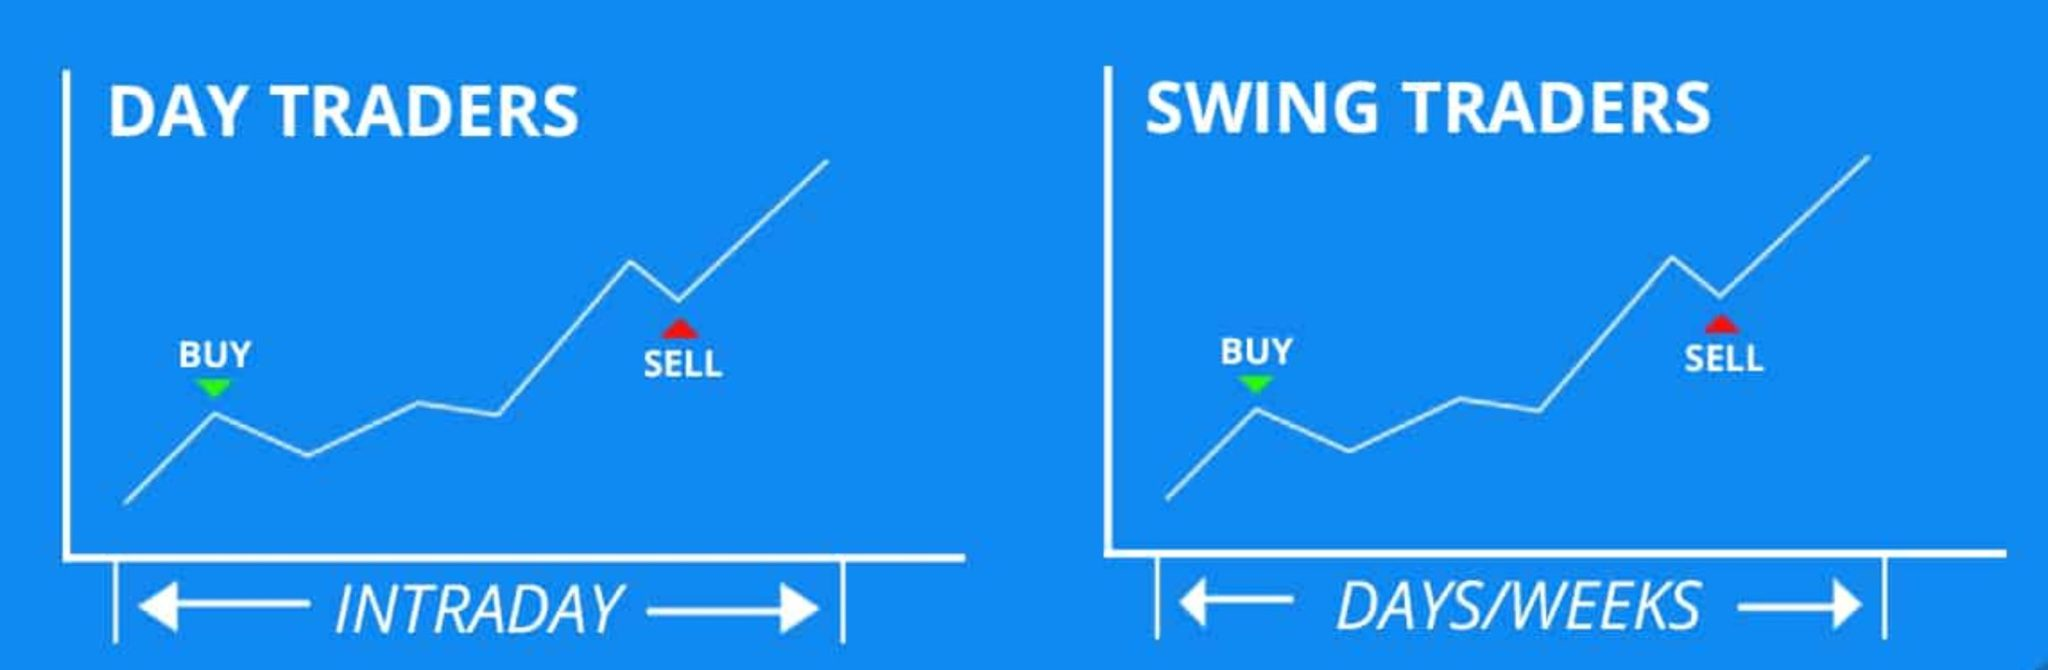 Day trading vs Swing trading forex